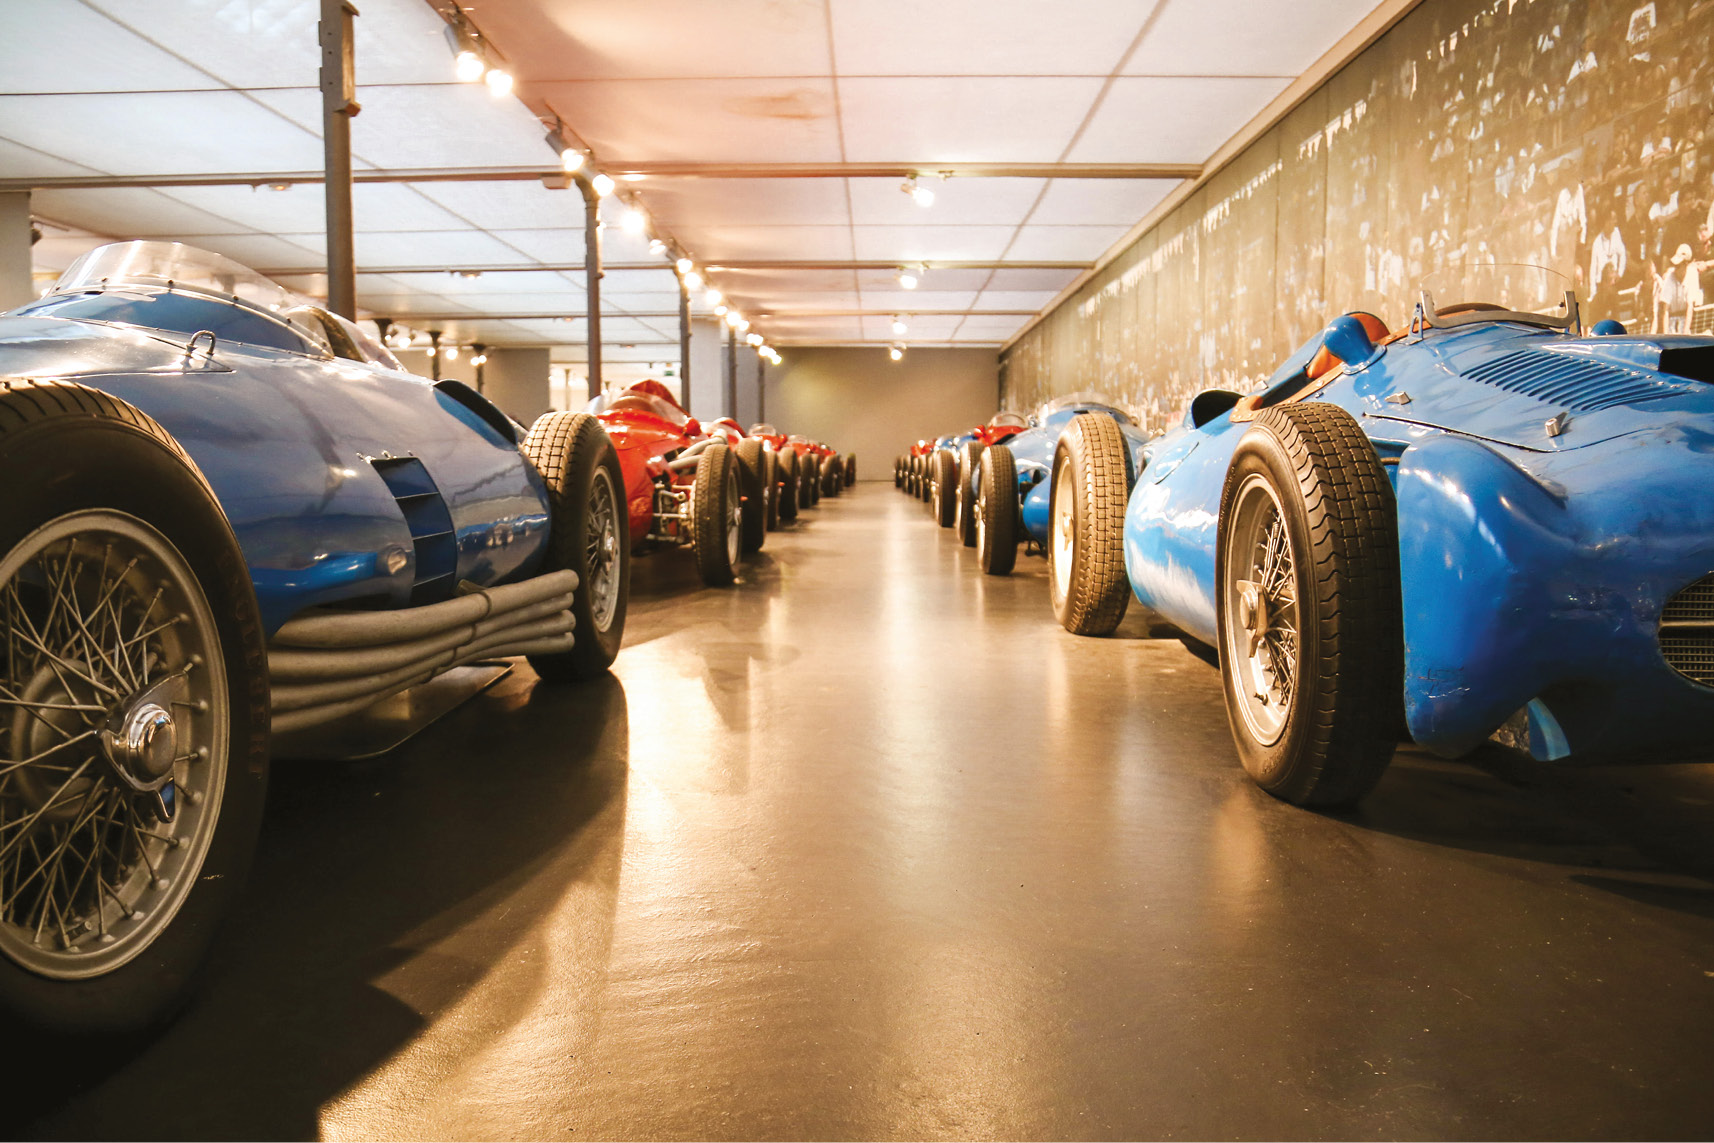 The Schlumpf brothers were textile magnates before starting their private classic car collection